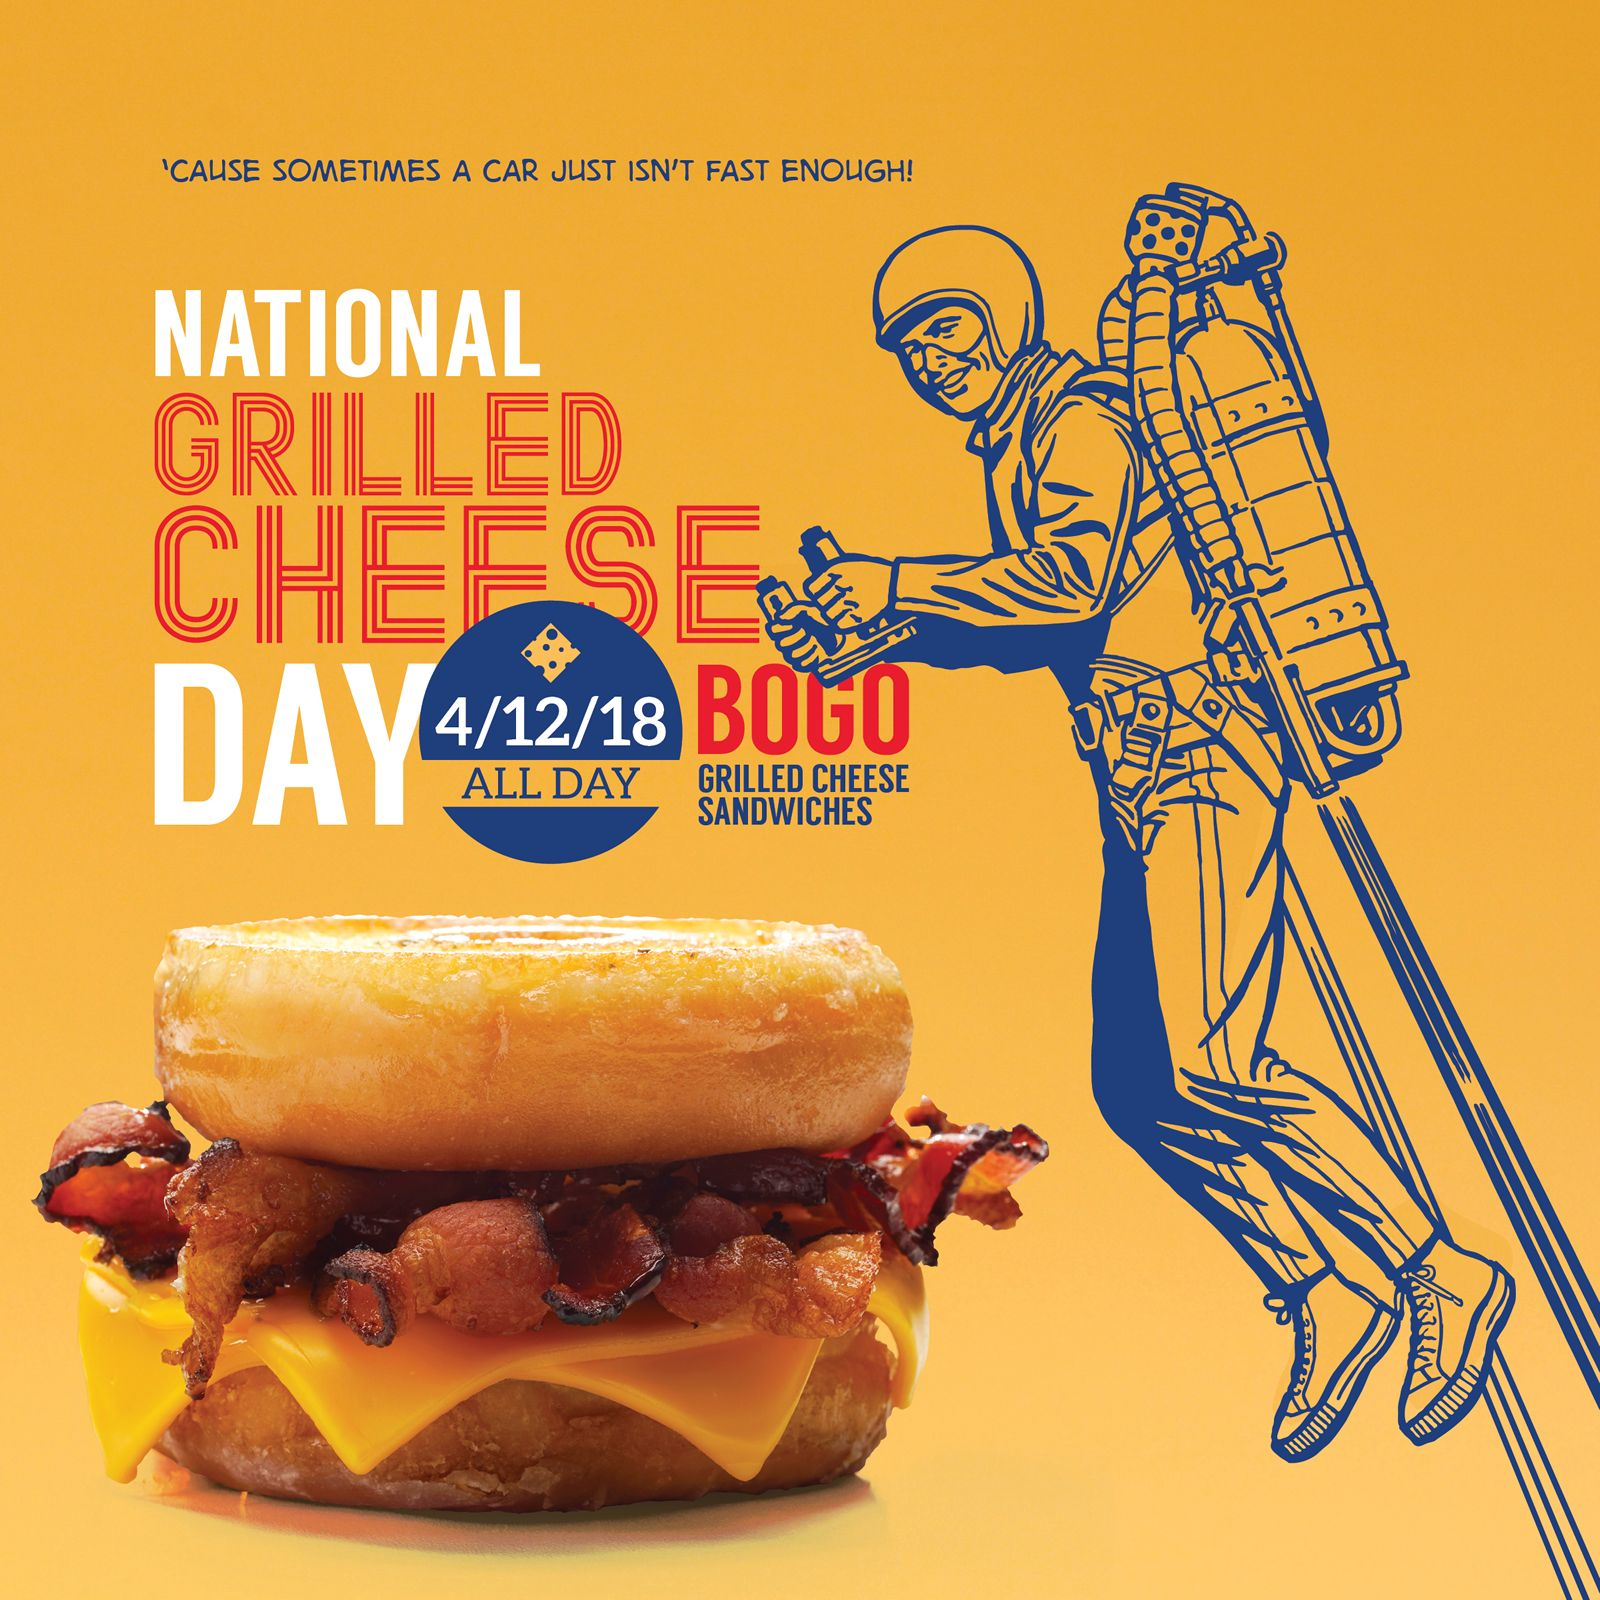 Free Grilled Cheese Sandwiches at Arooga's April 12th ...